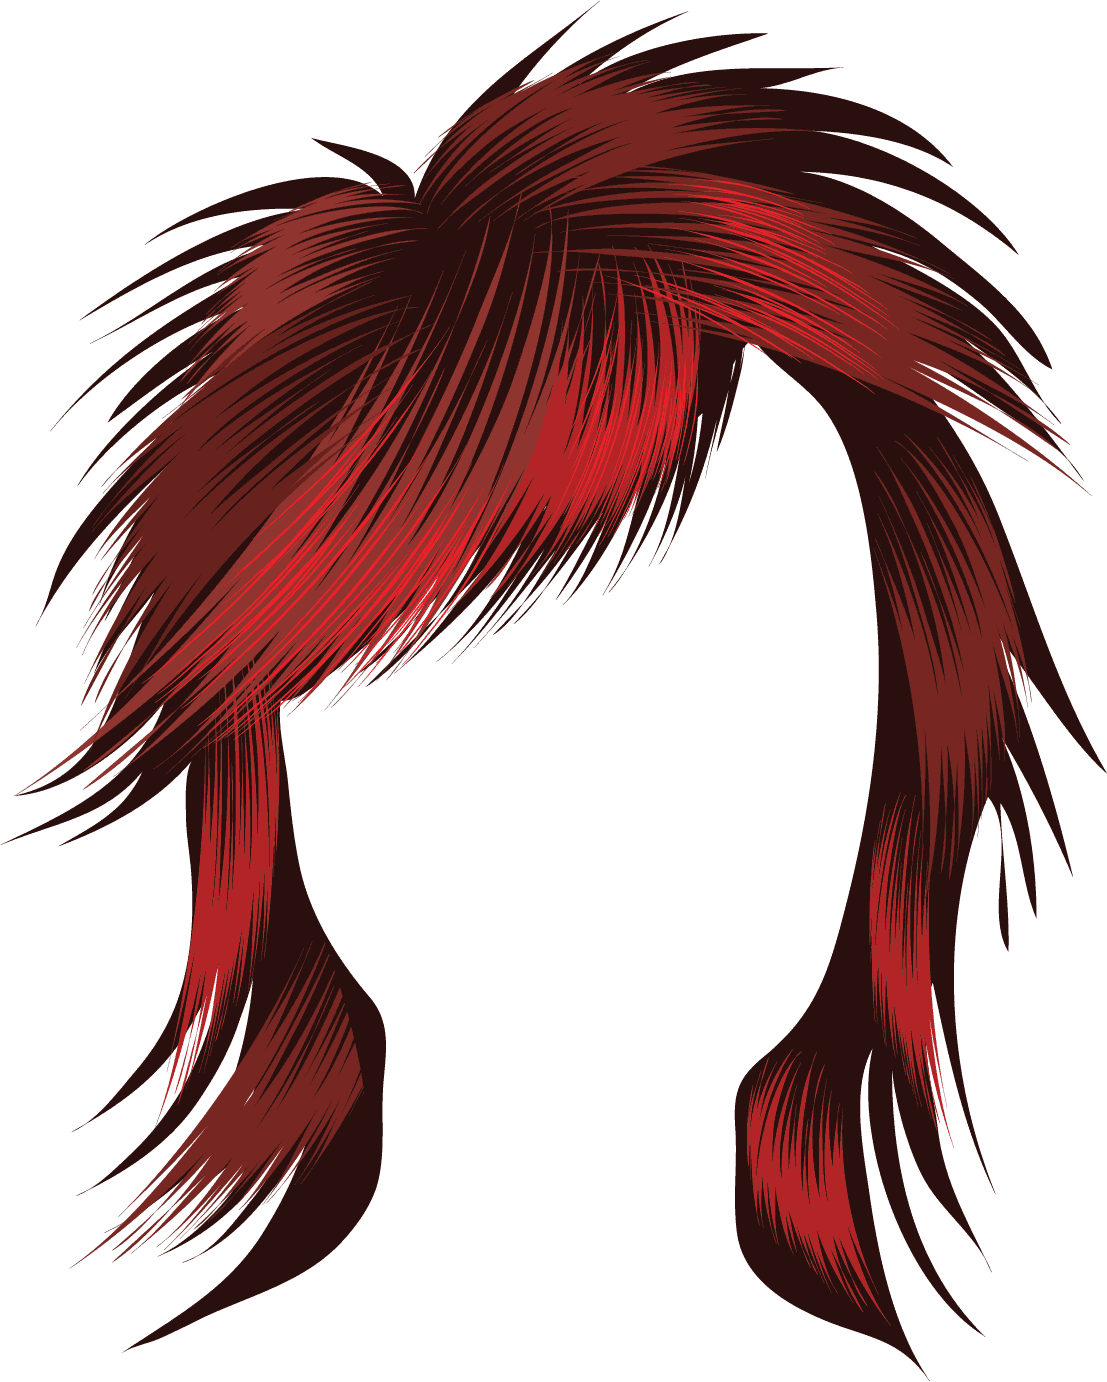 Red Hair clipart long hair Illustration Hair Clipart Boys ClipartMe